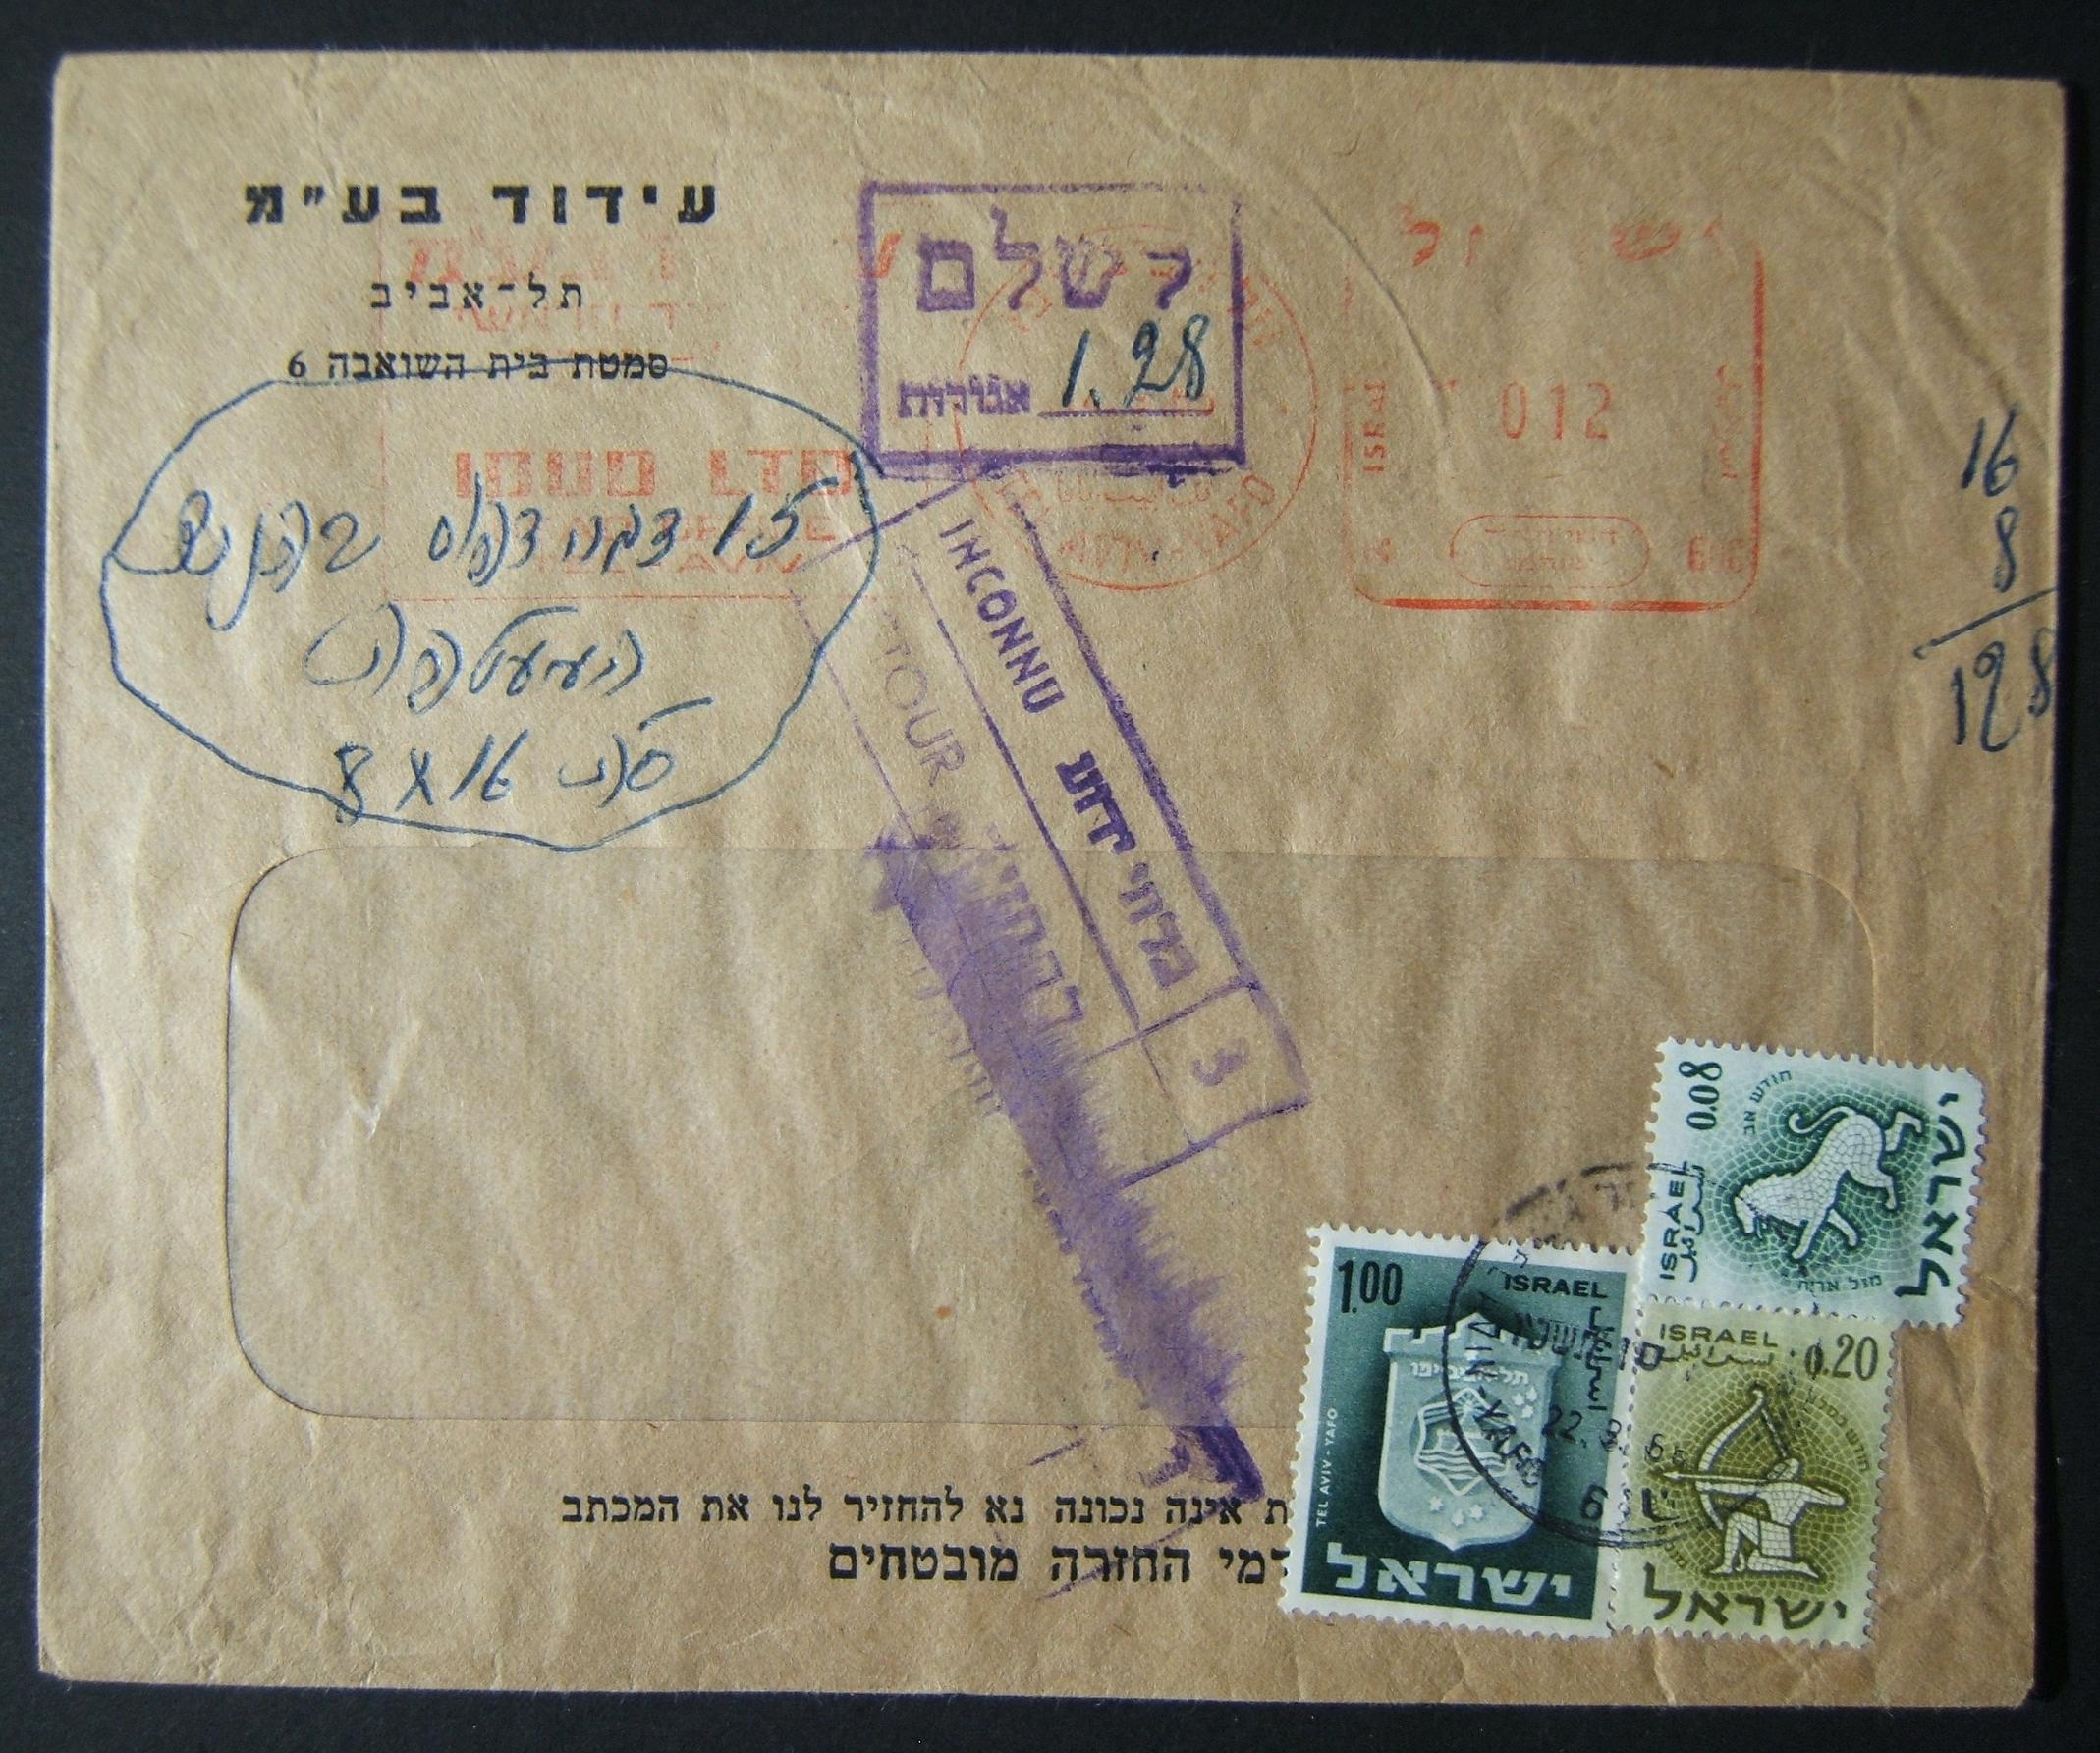 'Top of the pile' OLD/NEW PERIOD tax: 14-3-66 pm comm. cv ex TLV franked by meter at new DO-12 period (as of 13/03) 12 Ag rate; returned to sender as address unkno